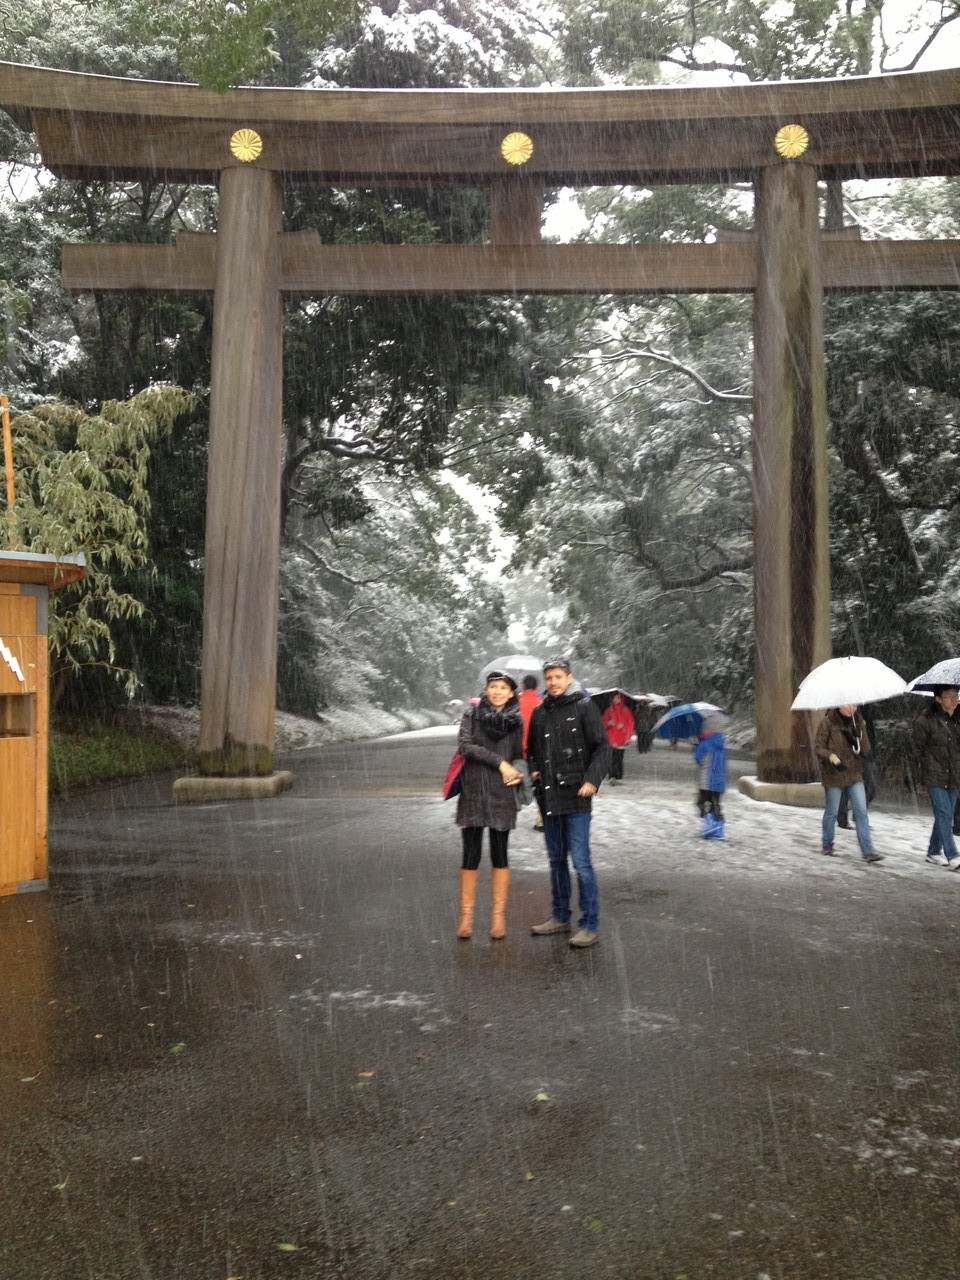 Next day there is a blizzard but undeterred, we head for the Meiji Shrine .. — at 明治神宮 (Meiji Shrine).